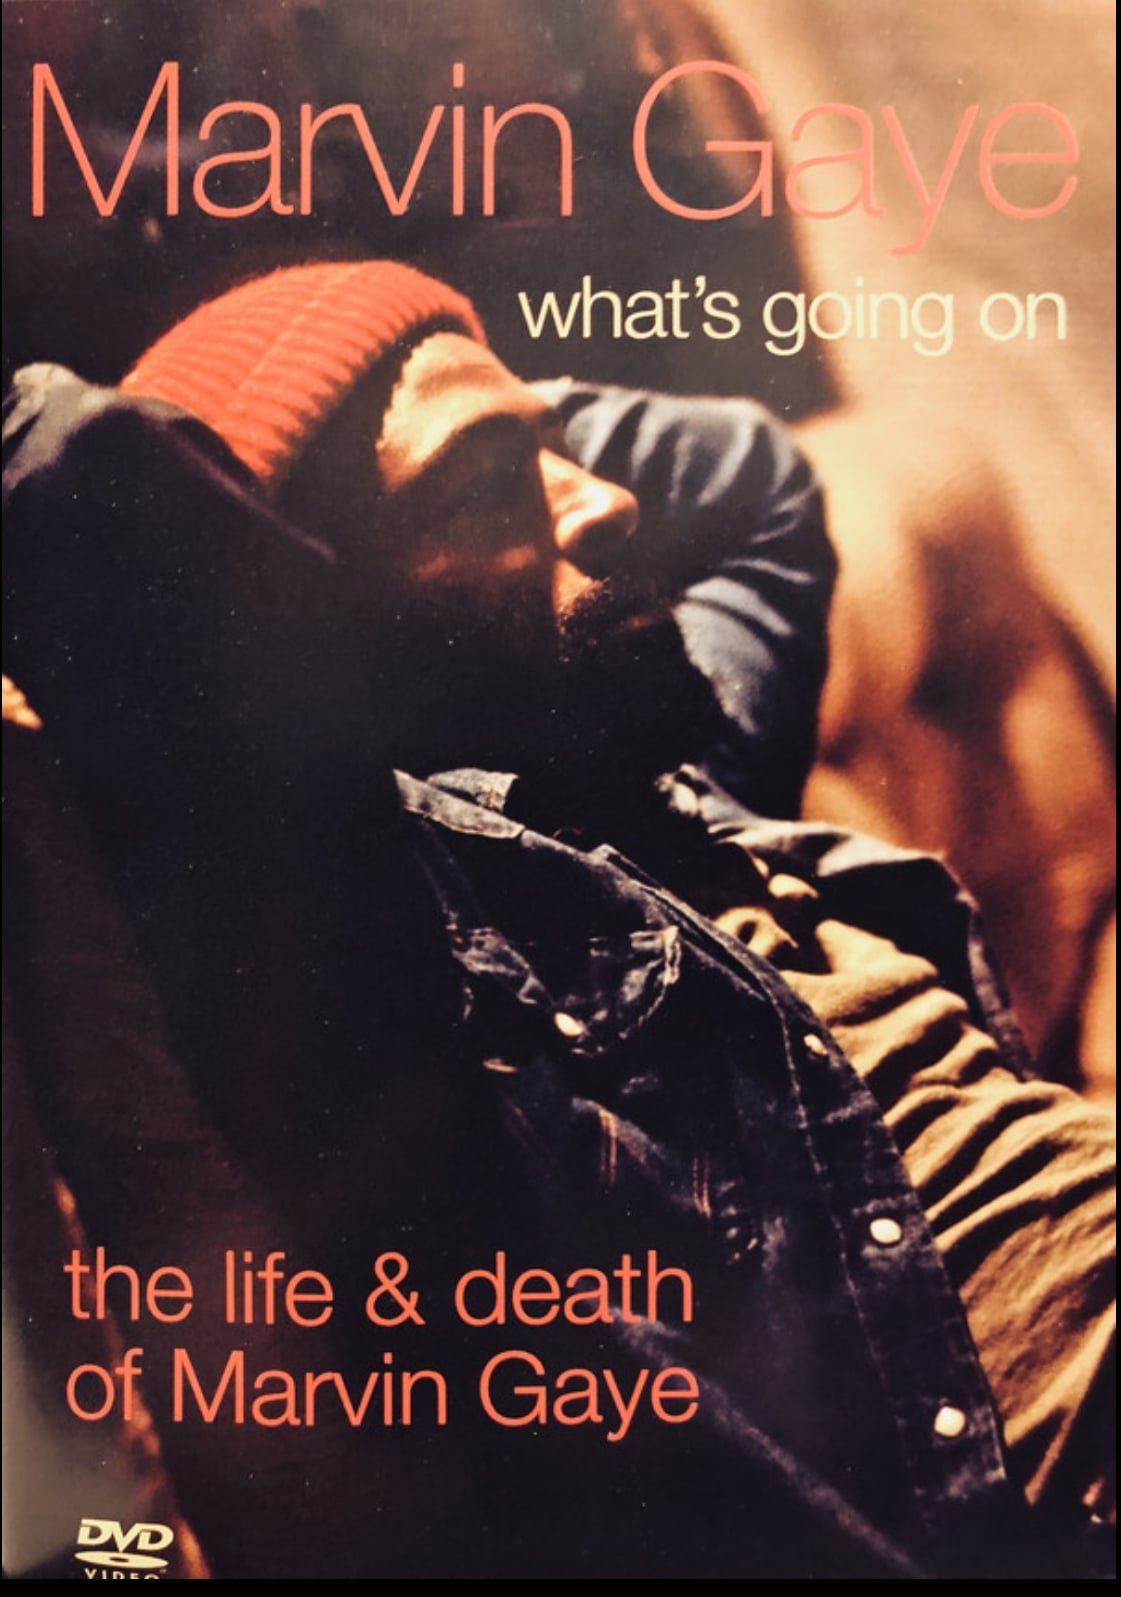 Marvin Gaye What's going on Life and Death of Marvin Gaye streaming sur zone telechargement